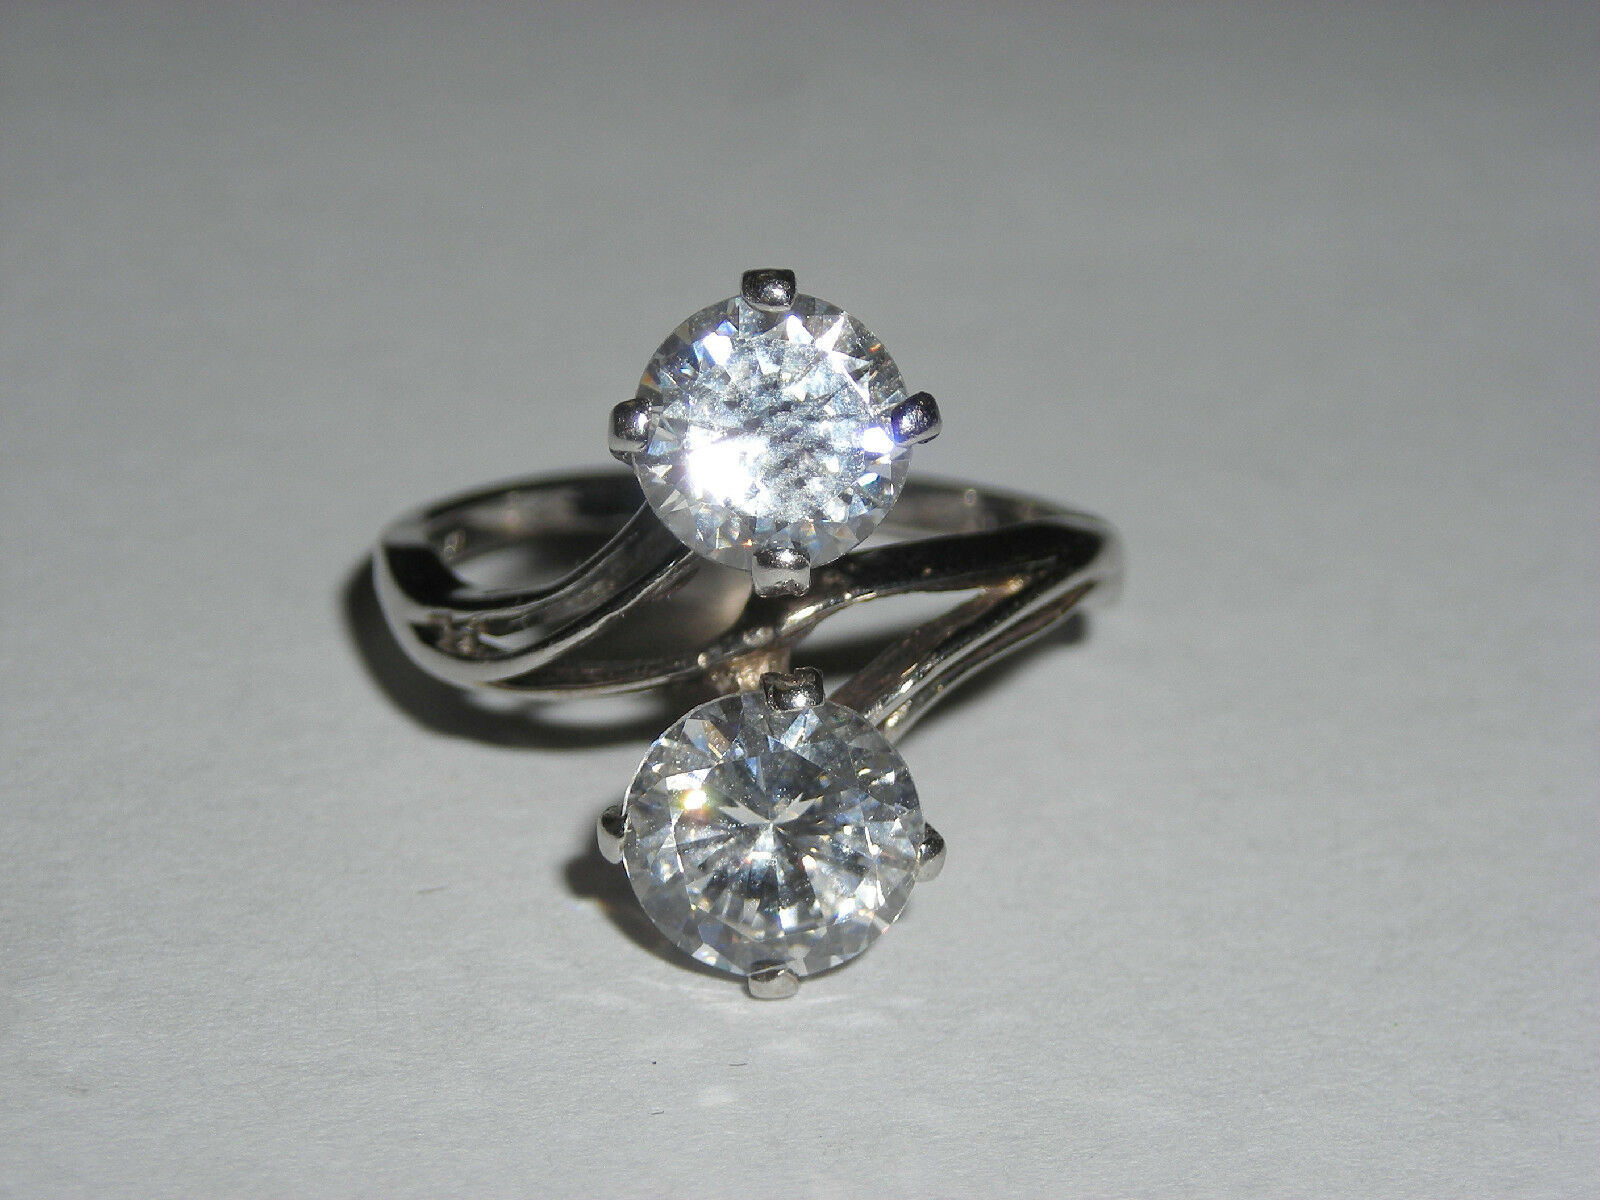 Ladies 14K White gold RIng Set with 2 One Carat Cubic Zirconias  Great Look